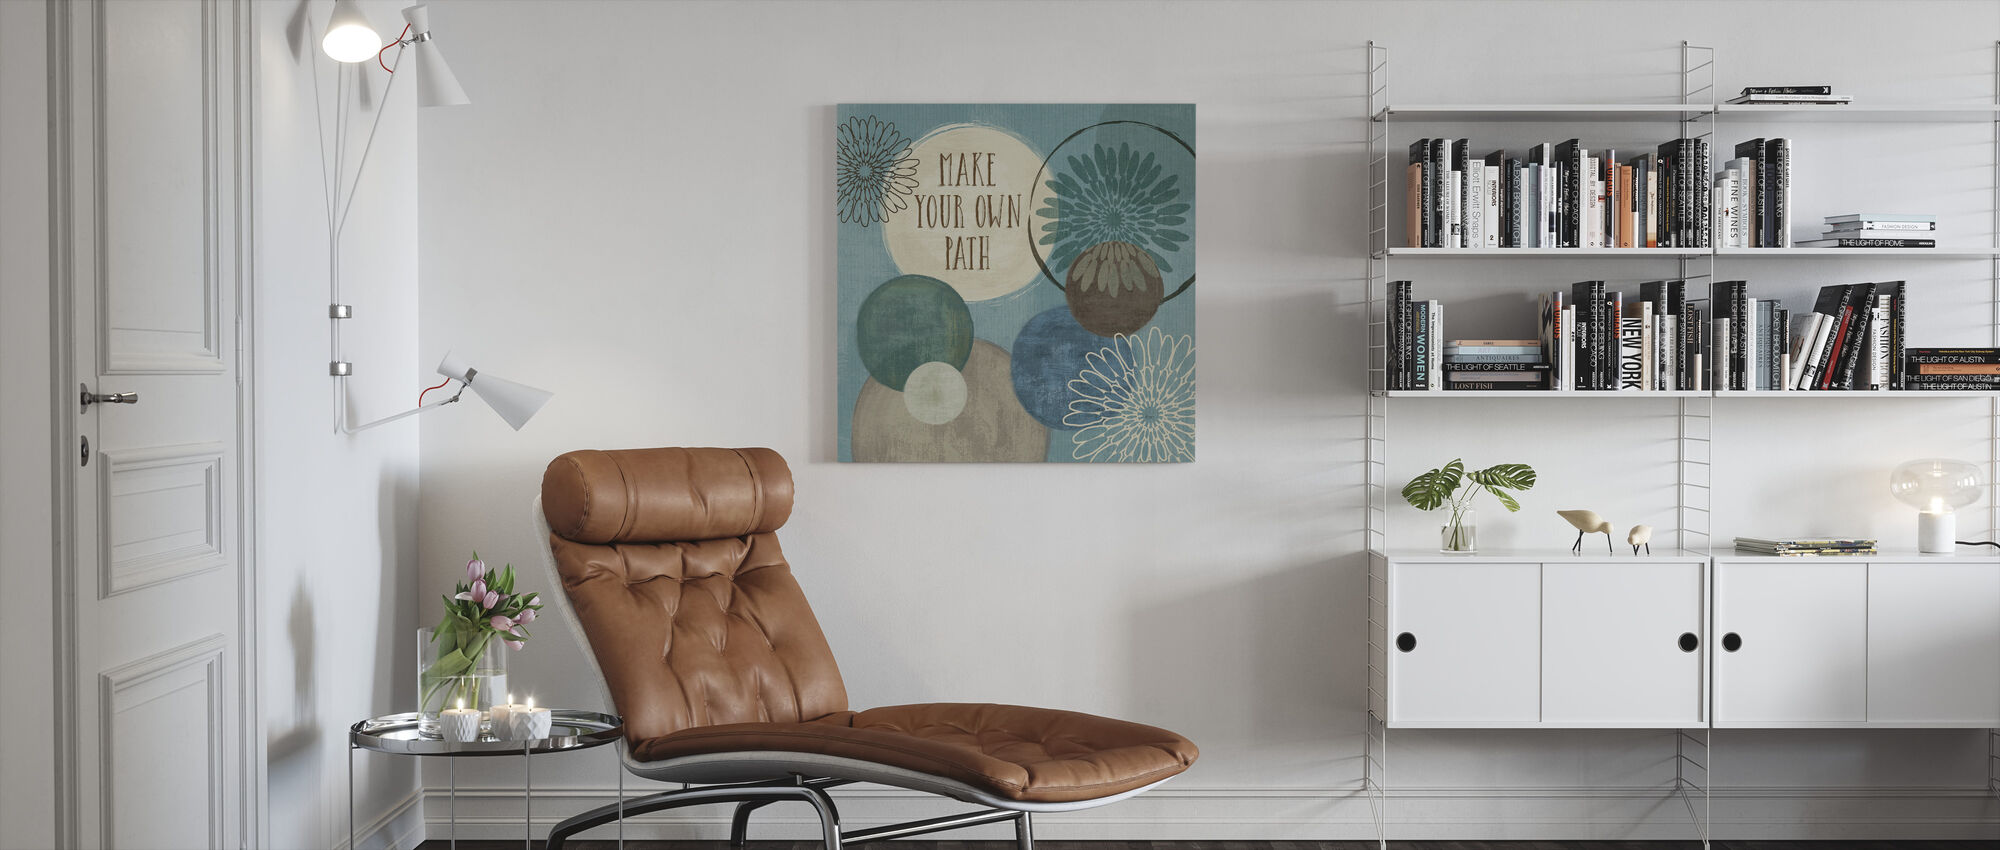 Make Your Own Path - Canvas print - Living Room